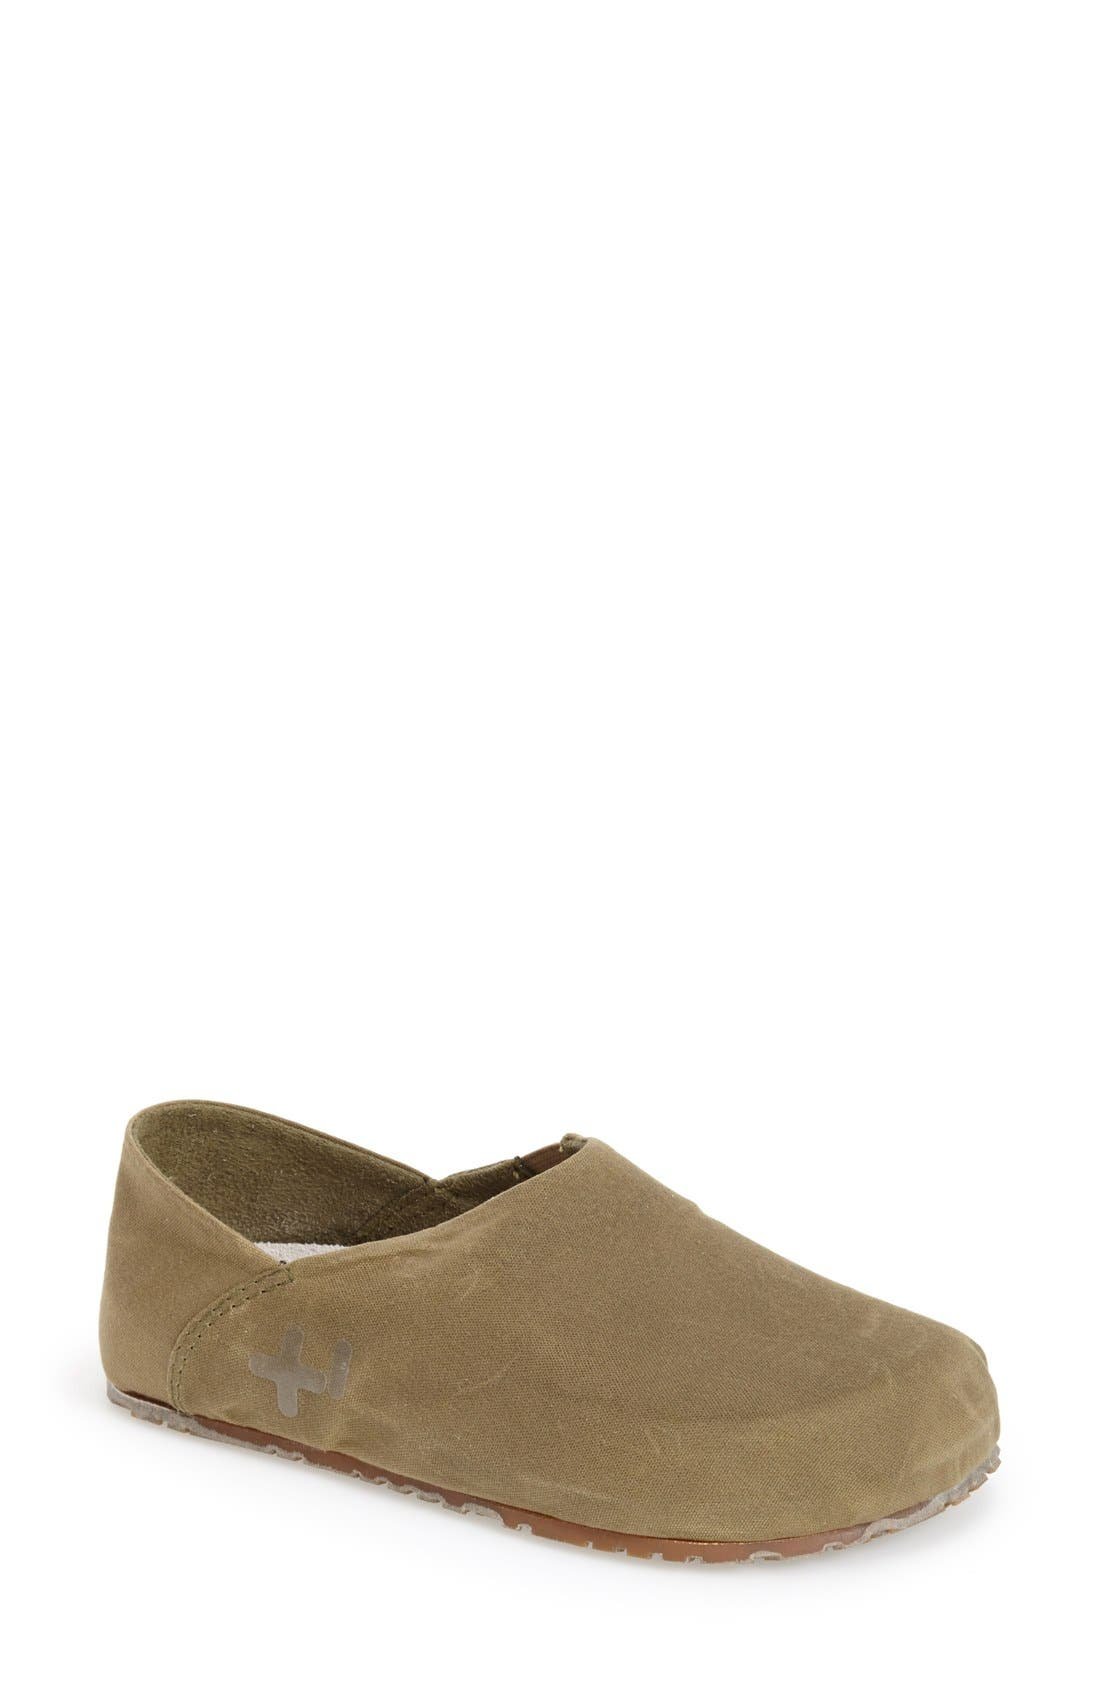 Alternate Image 1 Selected - OTZ Waxed Canvas Flat (Women)